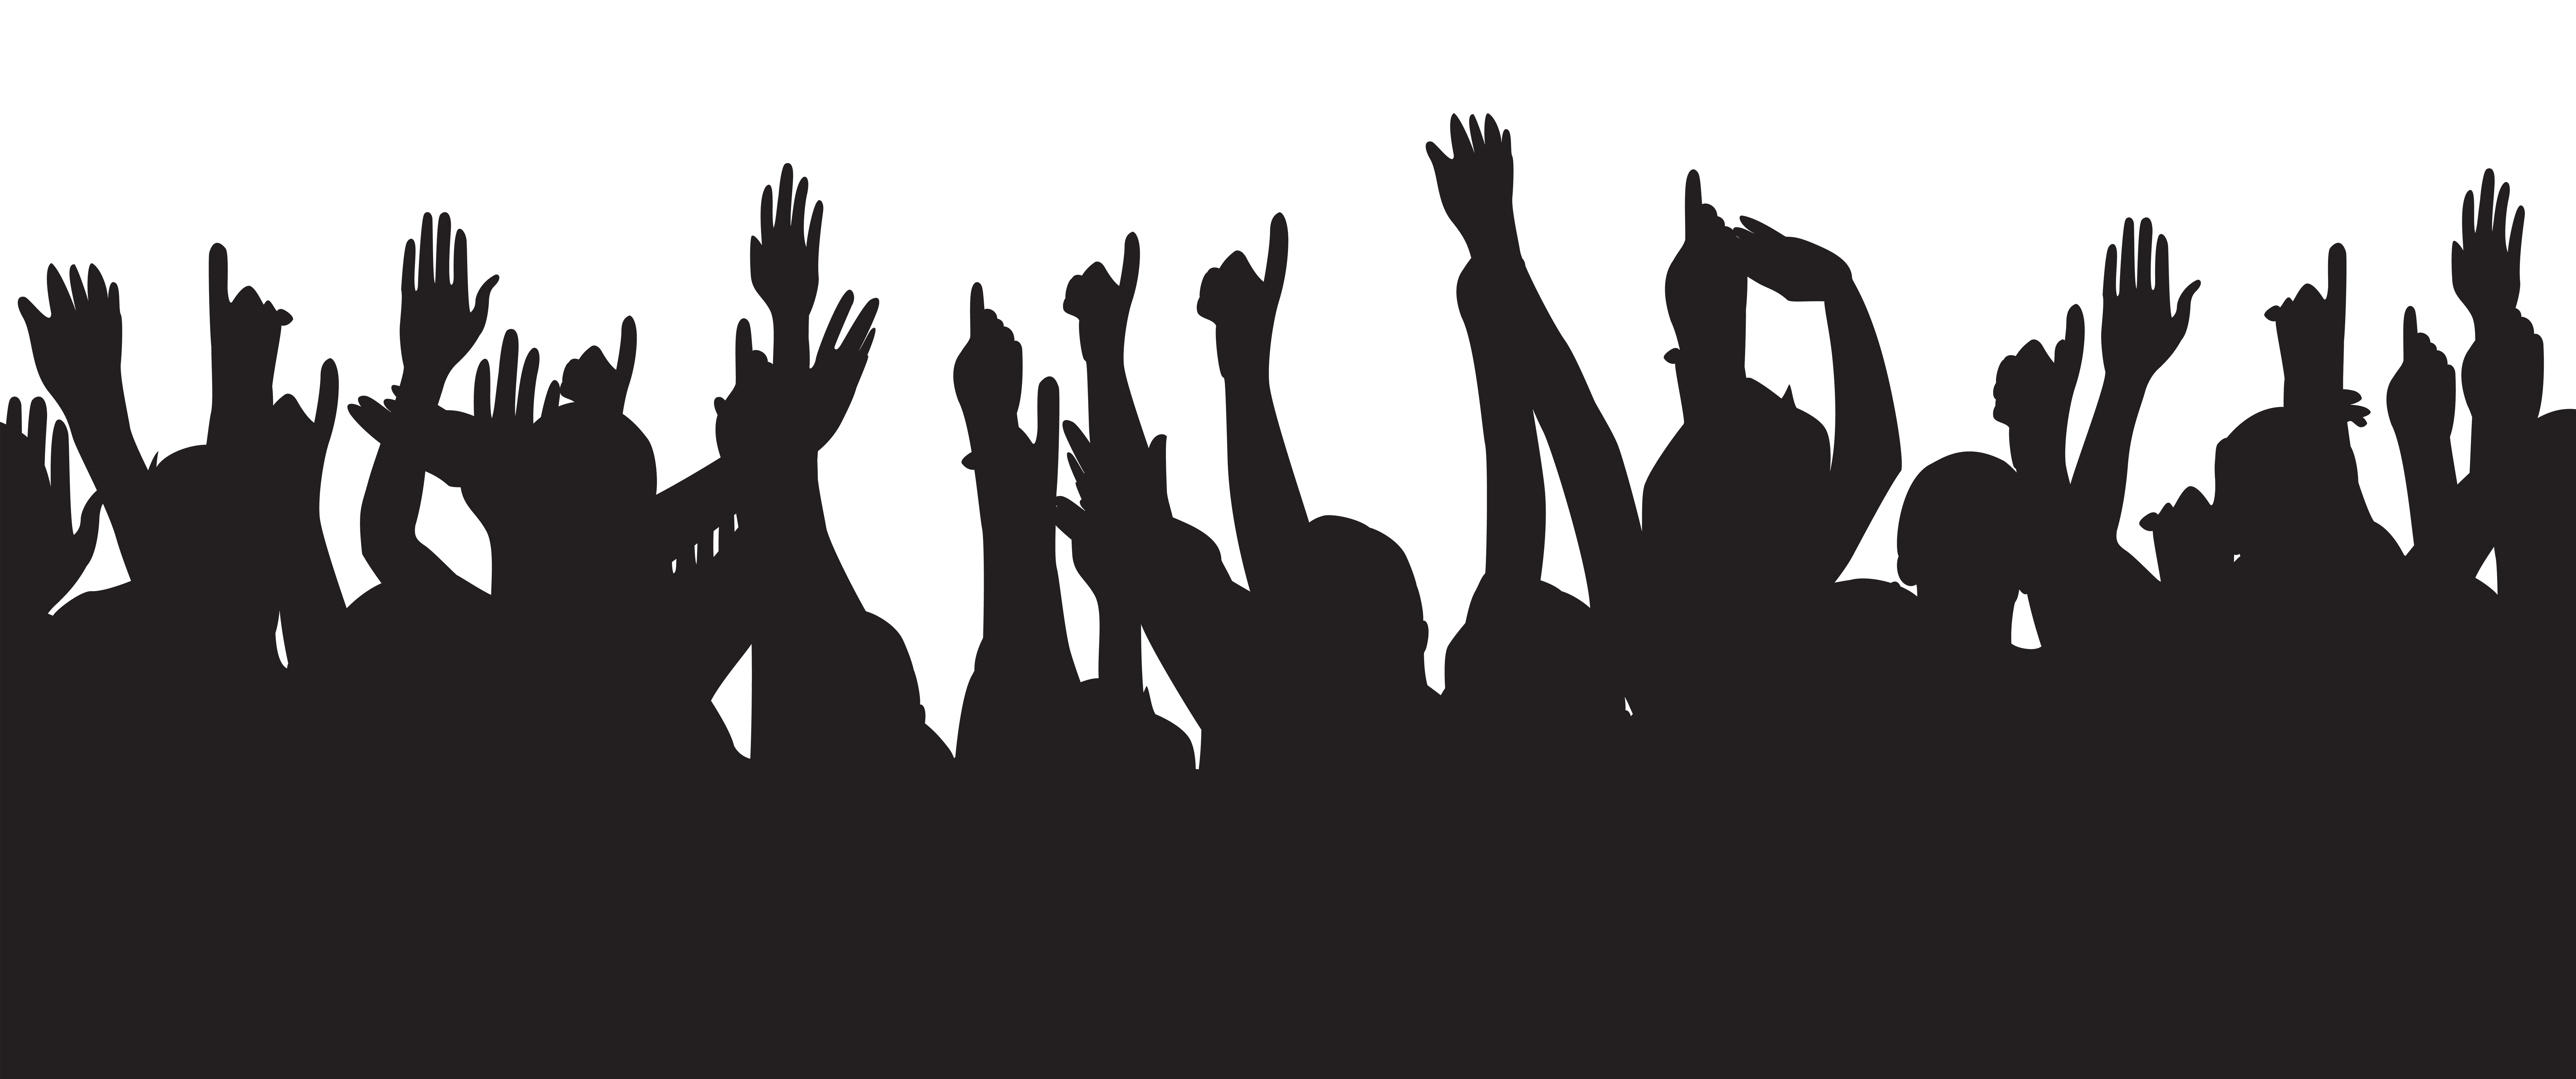 Party People Hands Up Silhouette Clip Art Image.